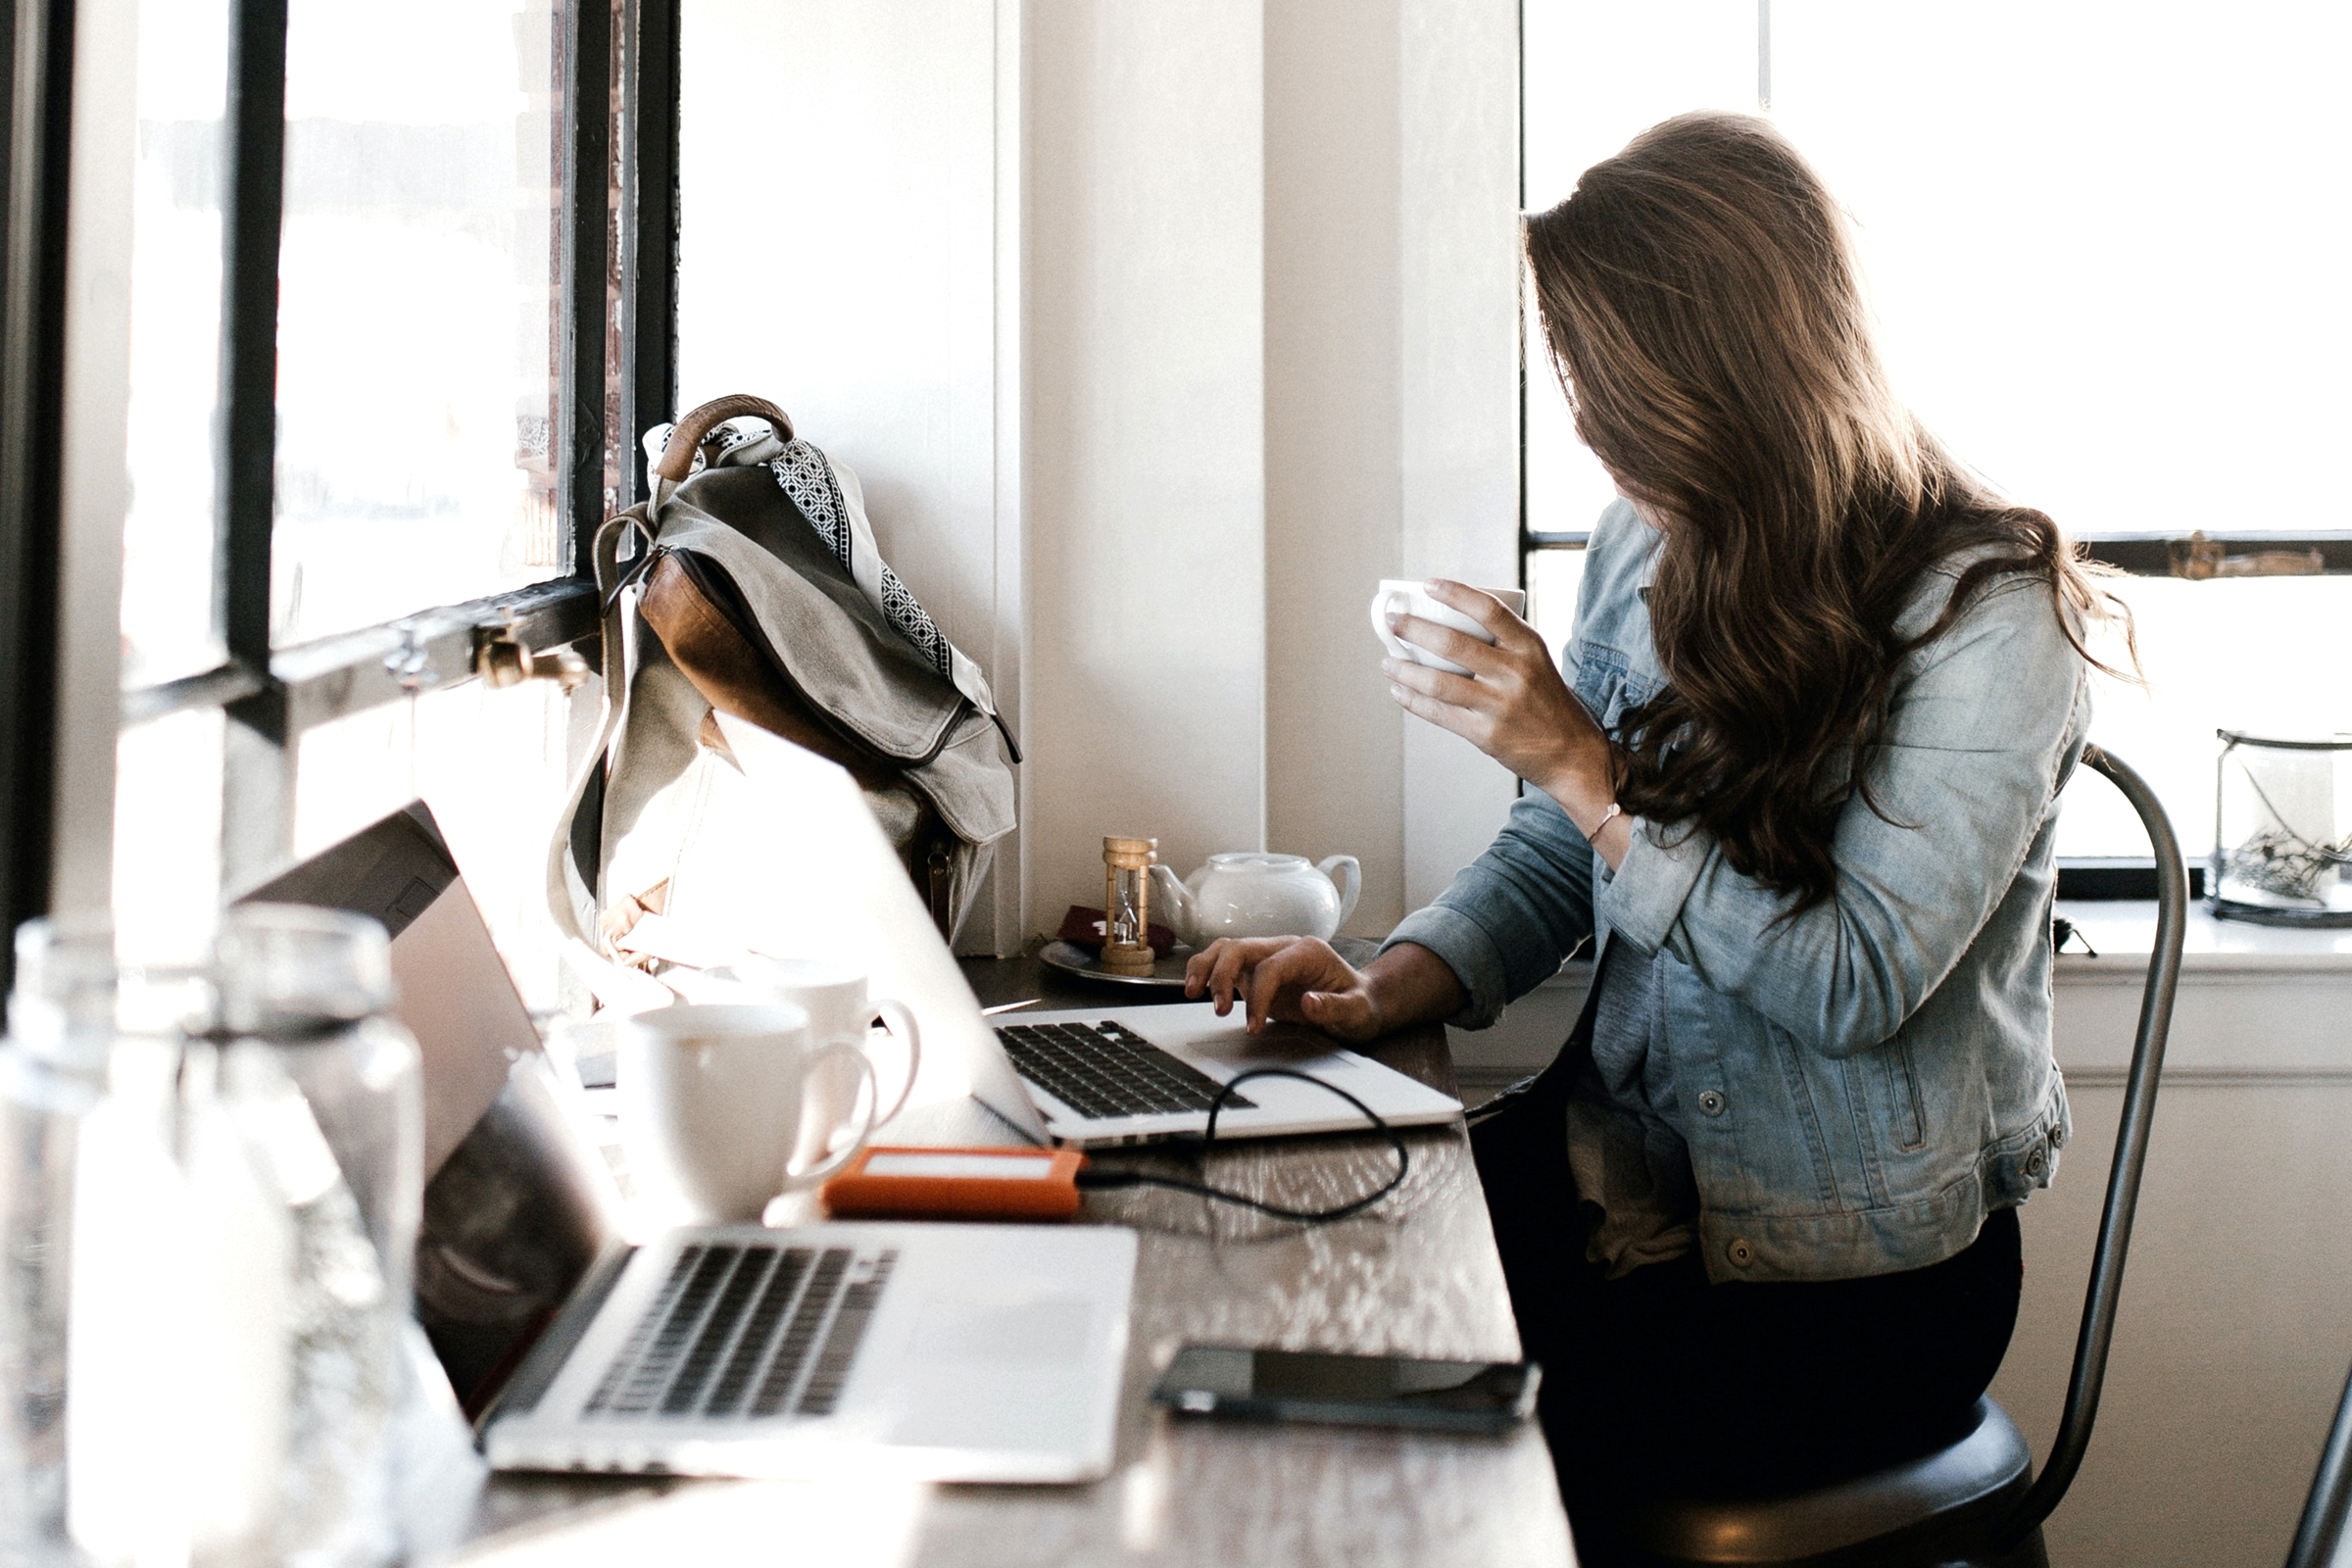 Images of women working in cafes